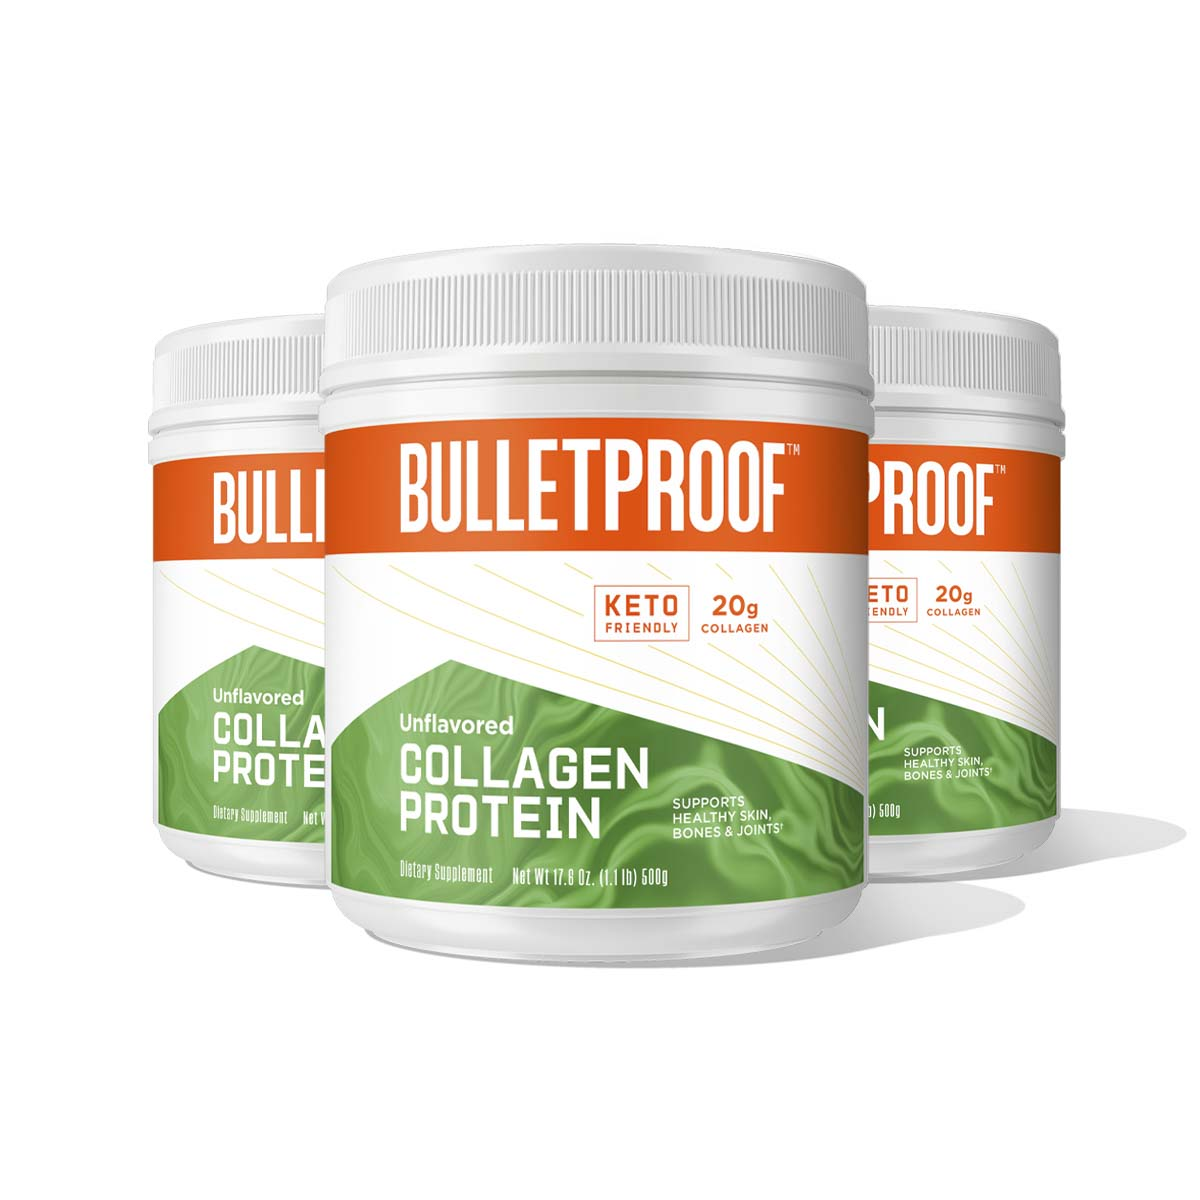 Bulletproof Unflavored Collagen Protein - 3 Pack